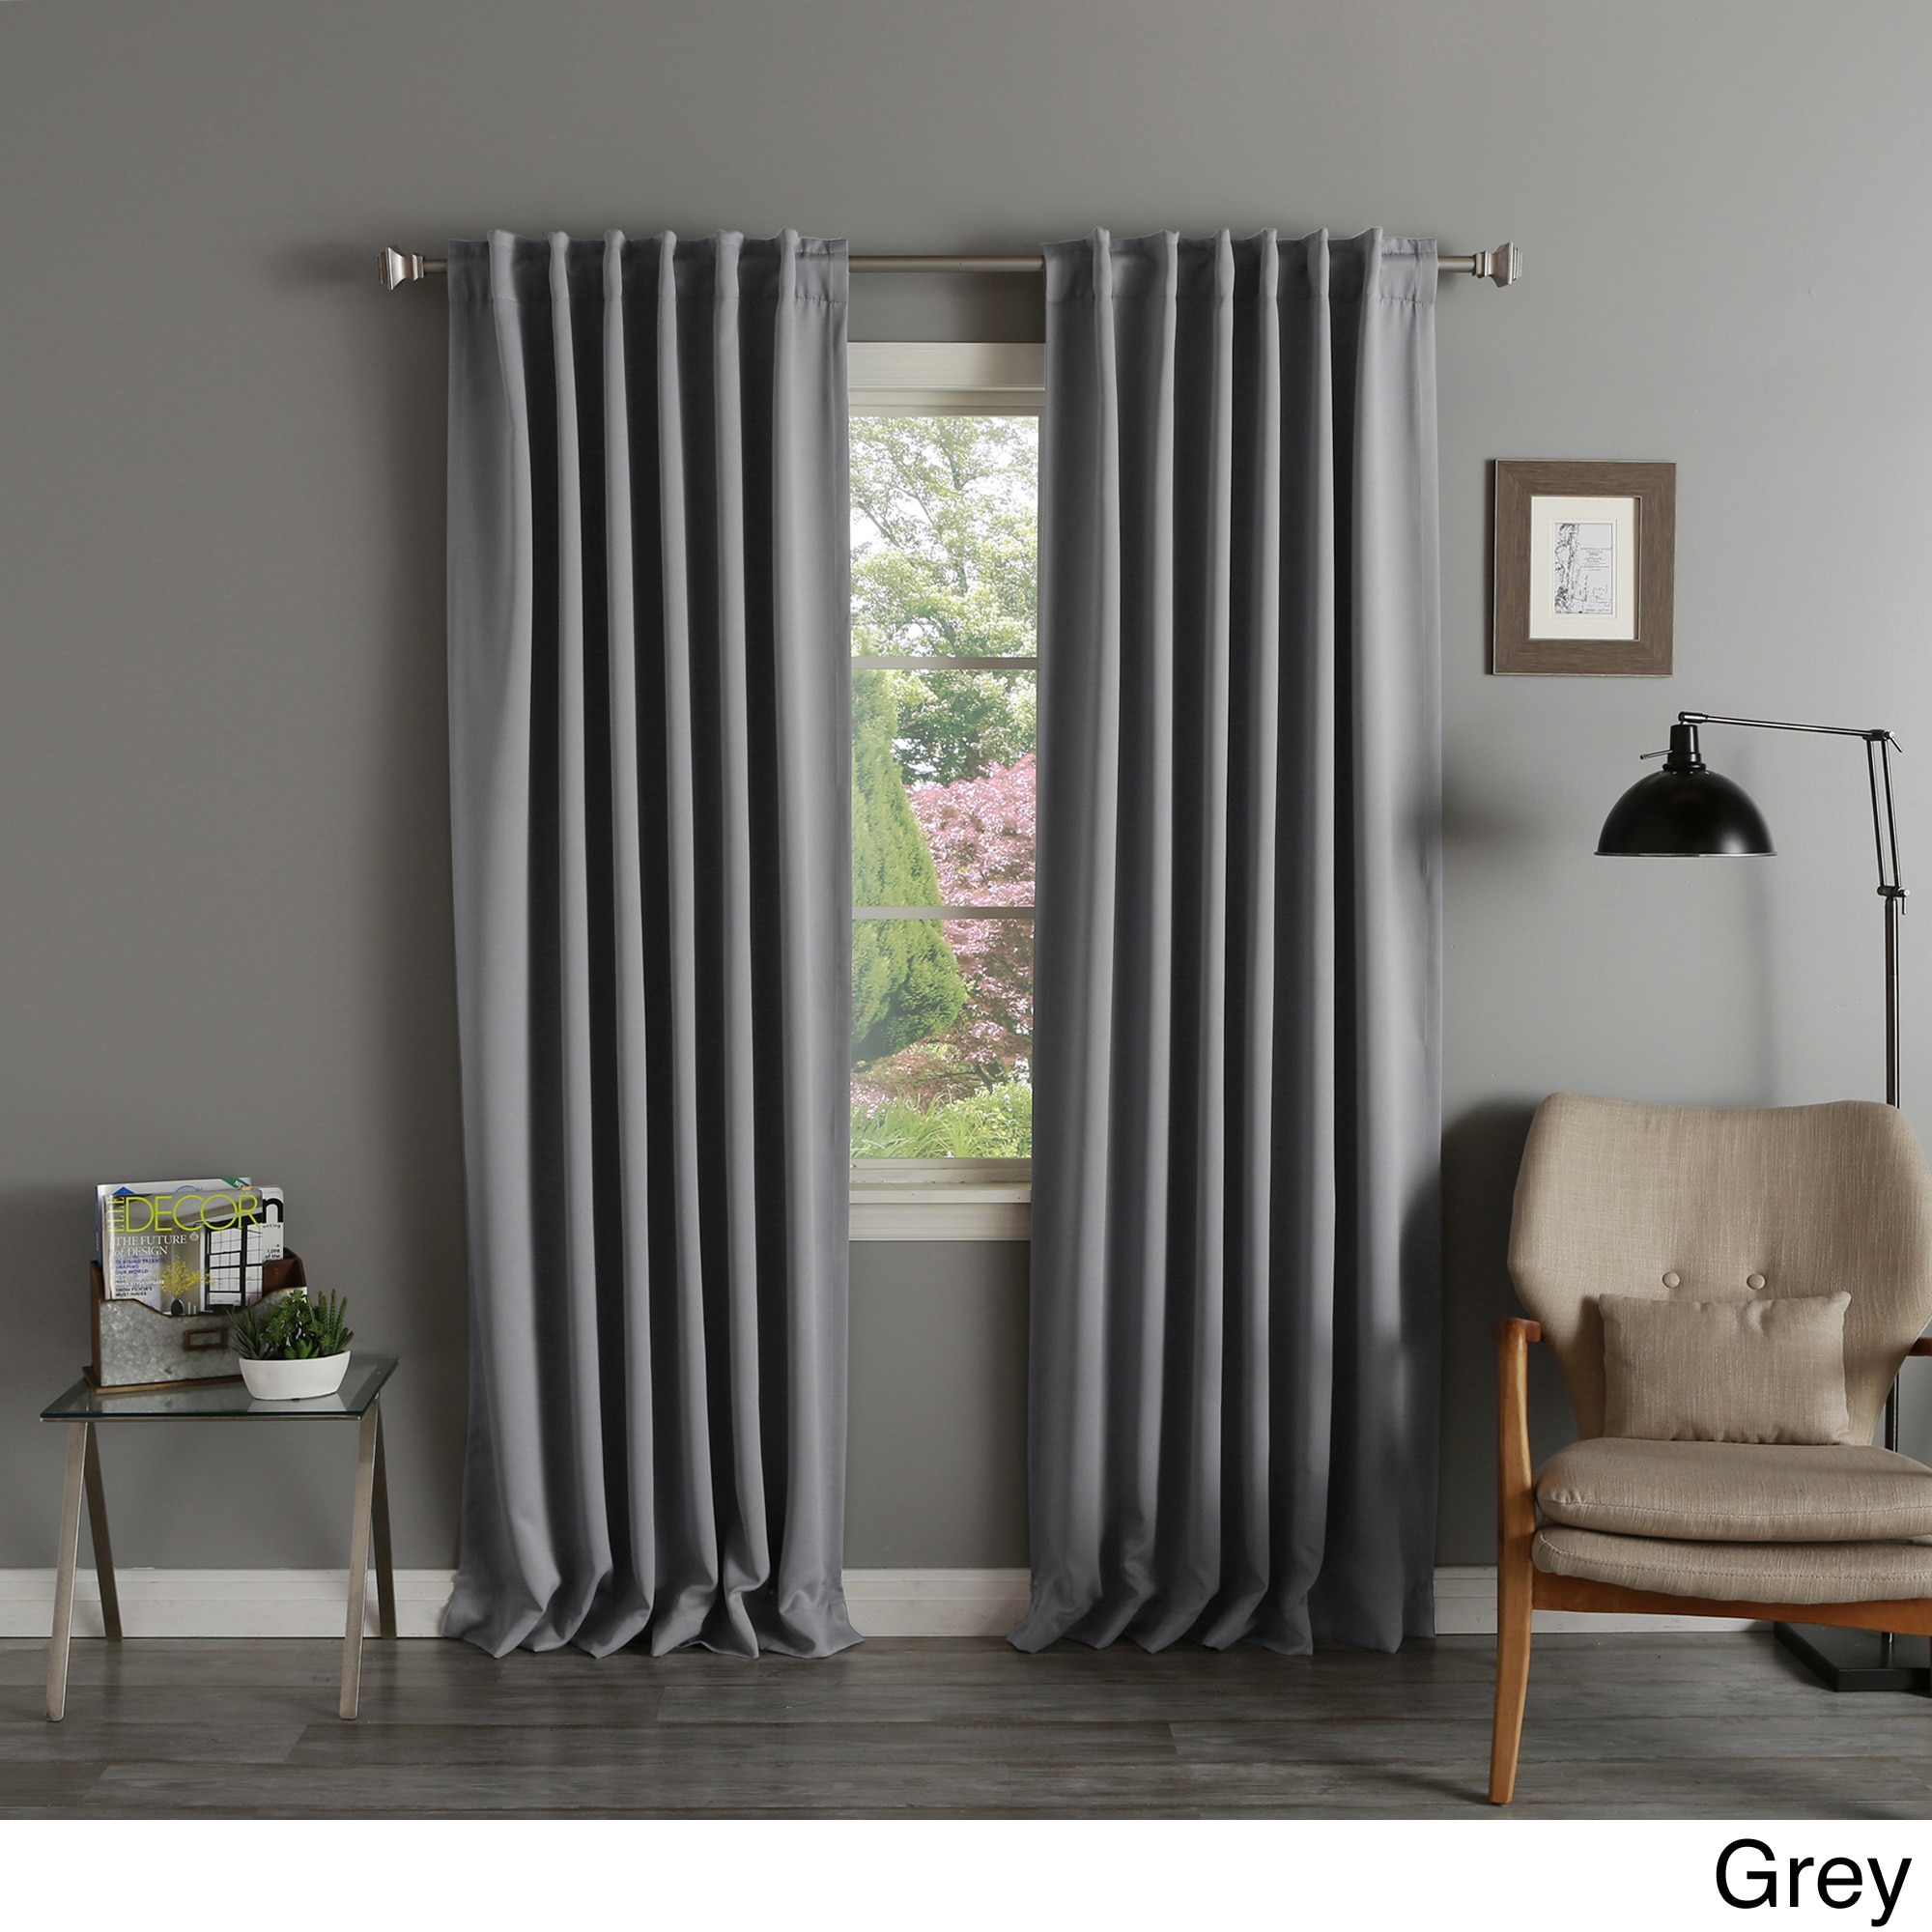 102 Inch Curtains Aurora Home Solid Insulated Thermal Blackout Curtain Panel Pair